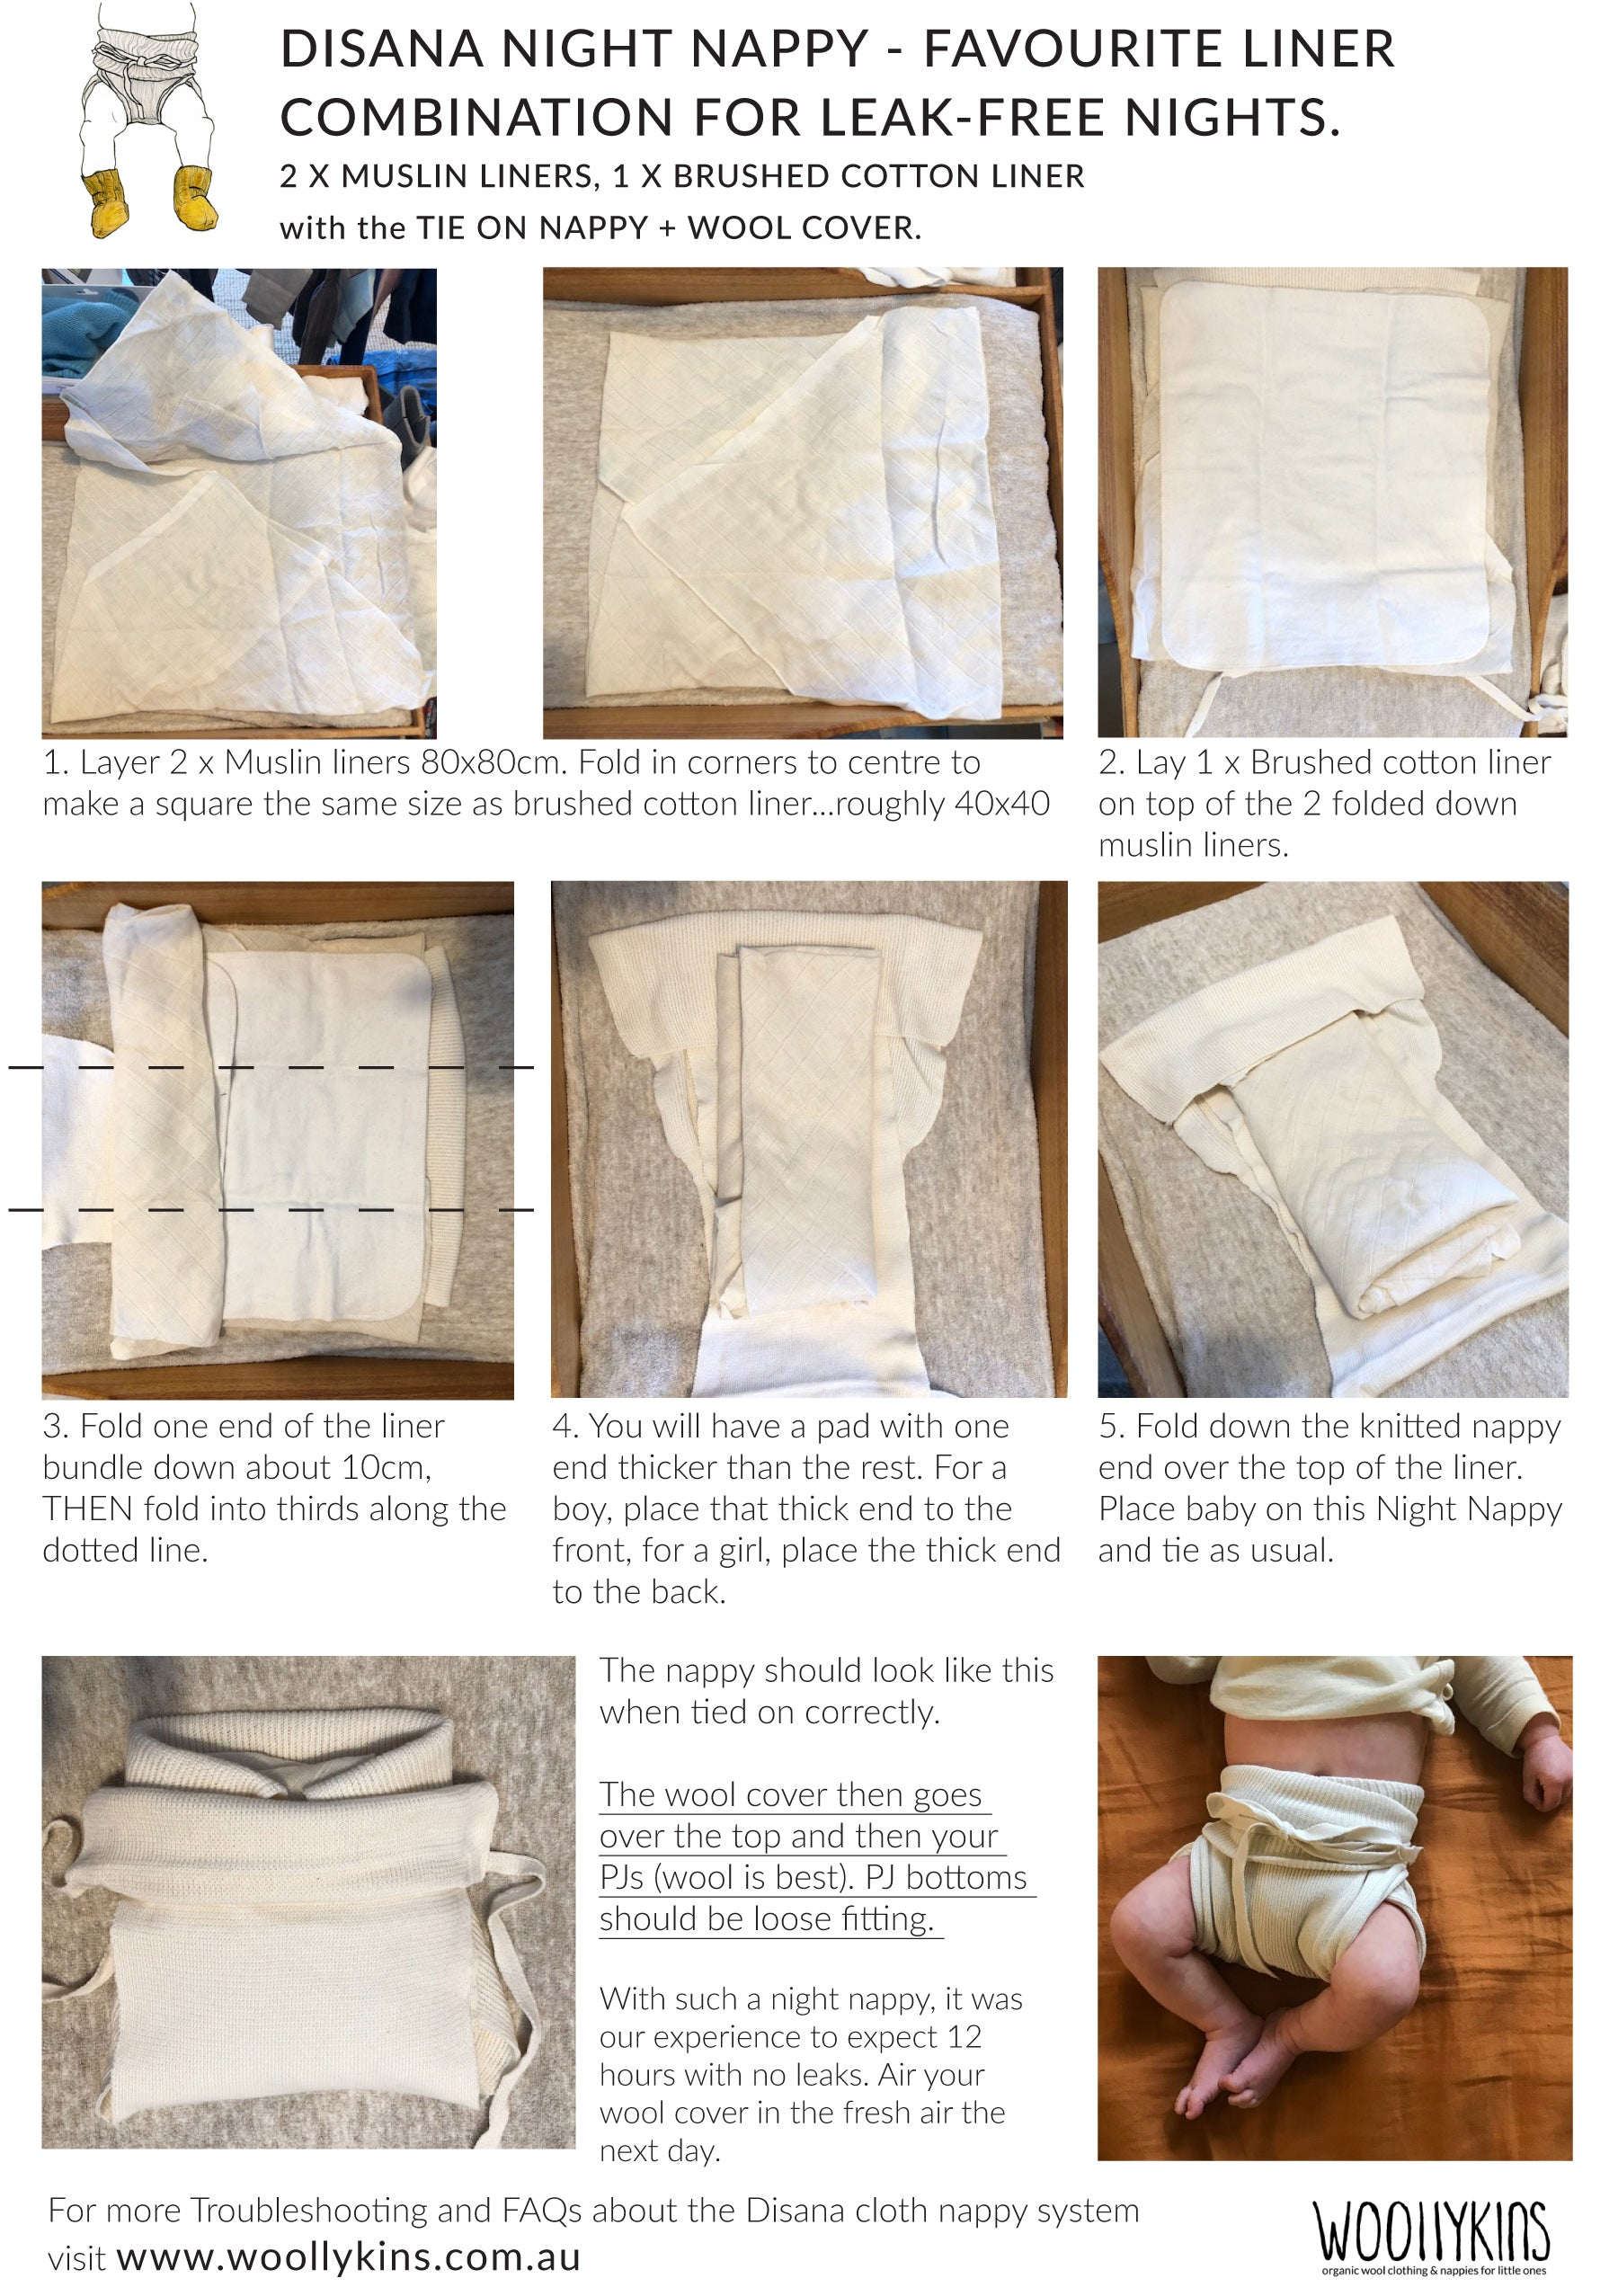 Disana cloth night nappy for leak-free nights by Woollykins